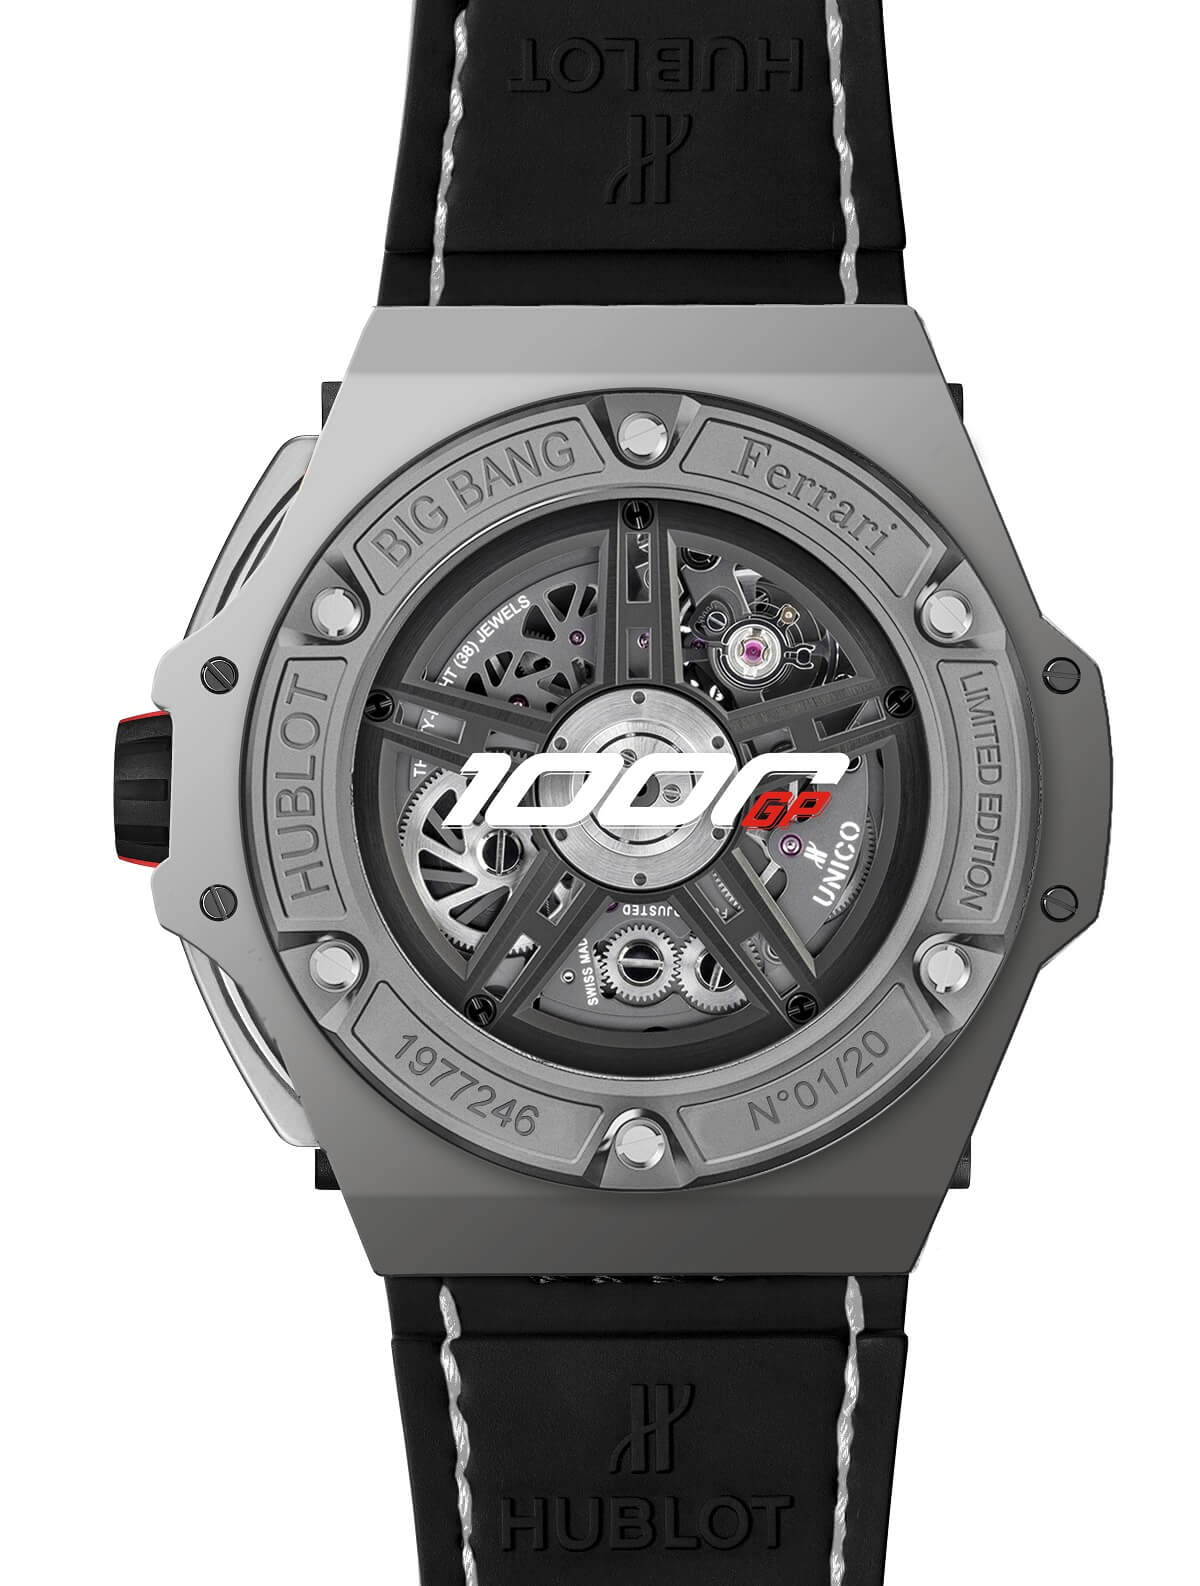 HUBLOT-BIG-BANG-Ferrari-1000-GP-3.jpg